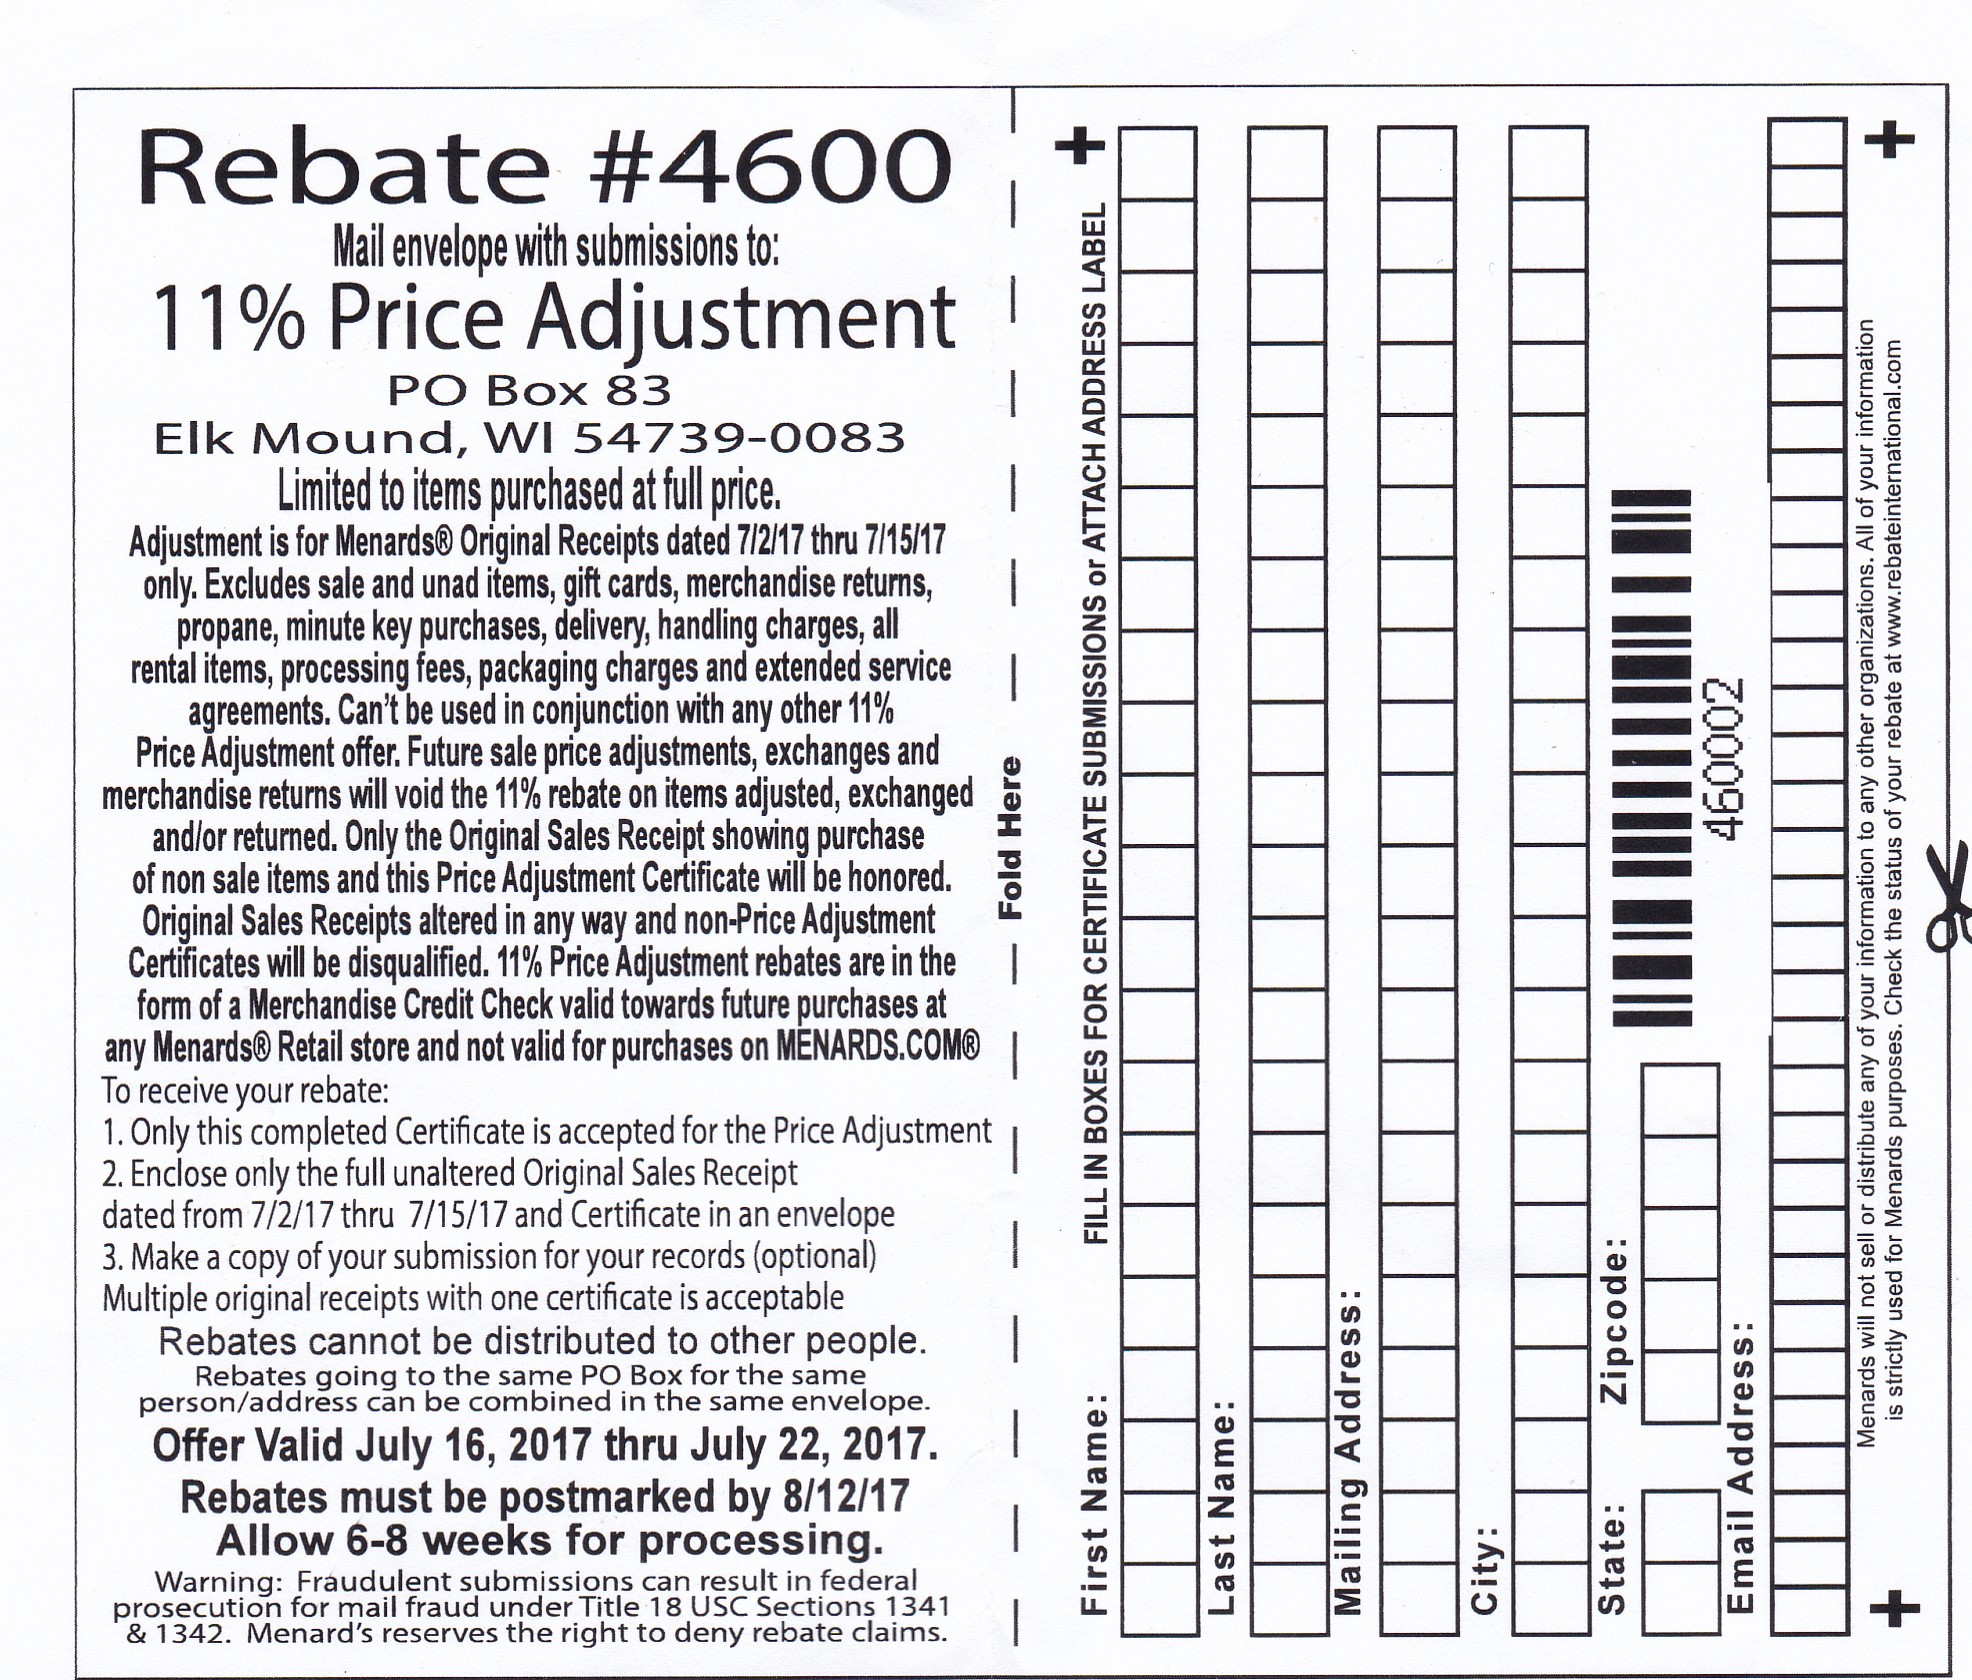 Menards 11% Price Adjustment Rebate - Struggleville